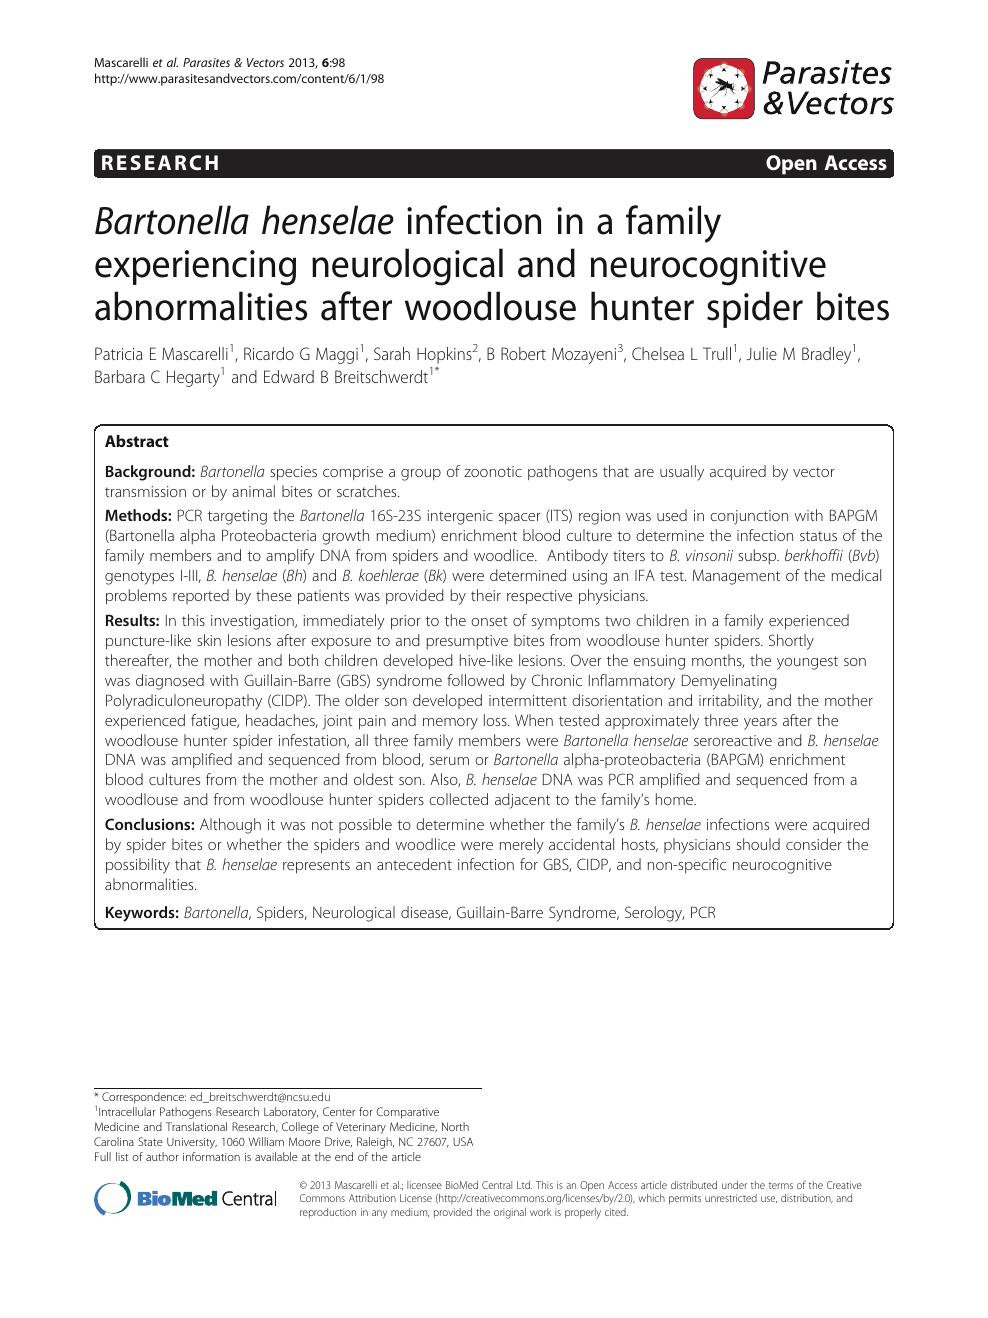 Bartonella henselae infection in a family experiencing